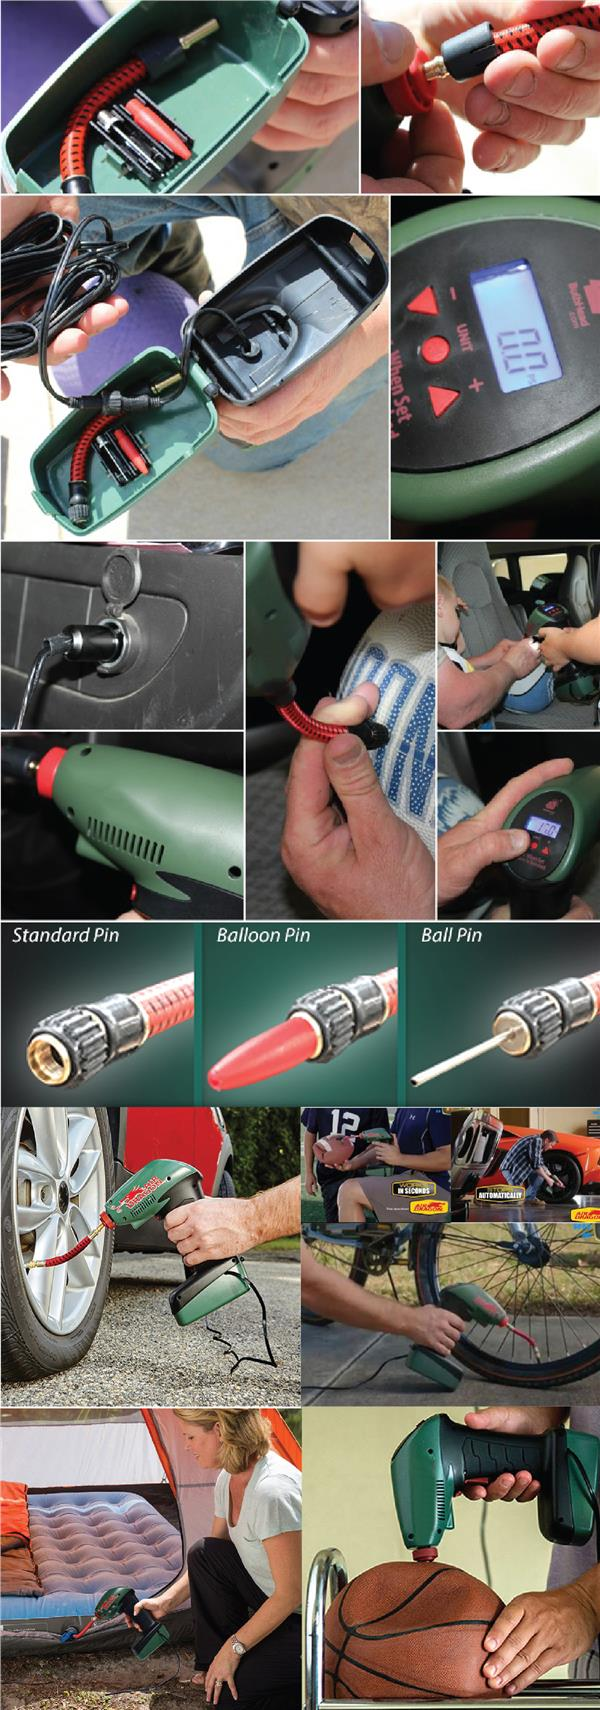 Air Dragon Portable Air Compressor Inflator Emergency Pump Auto Stop